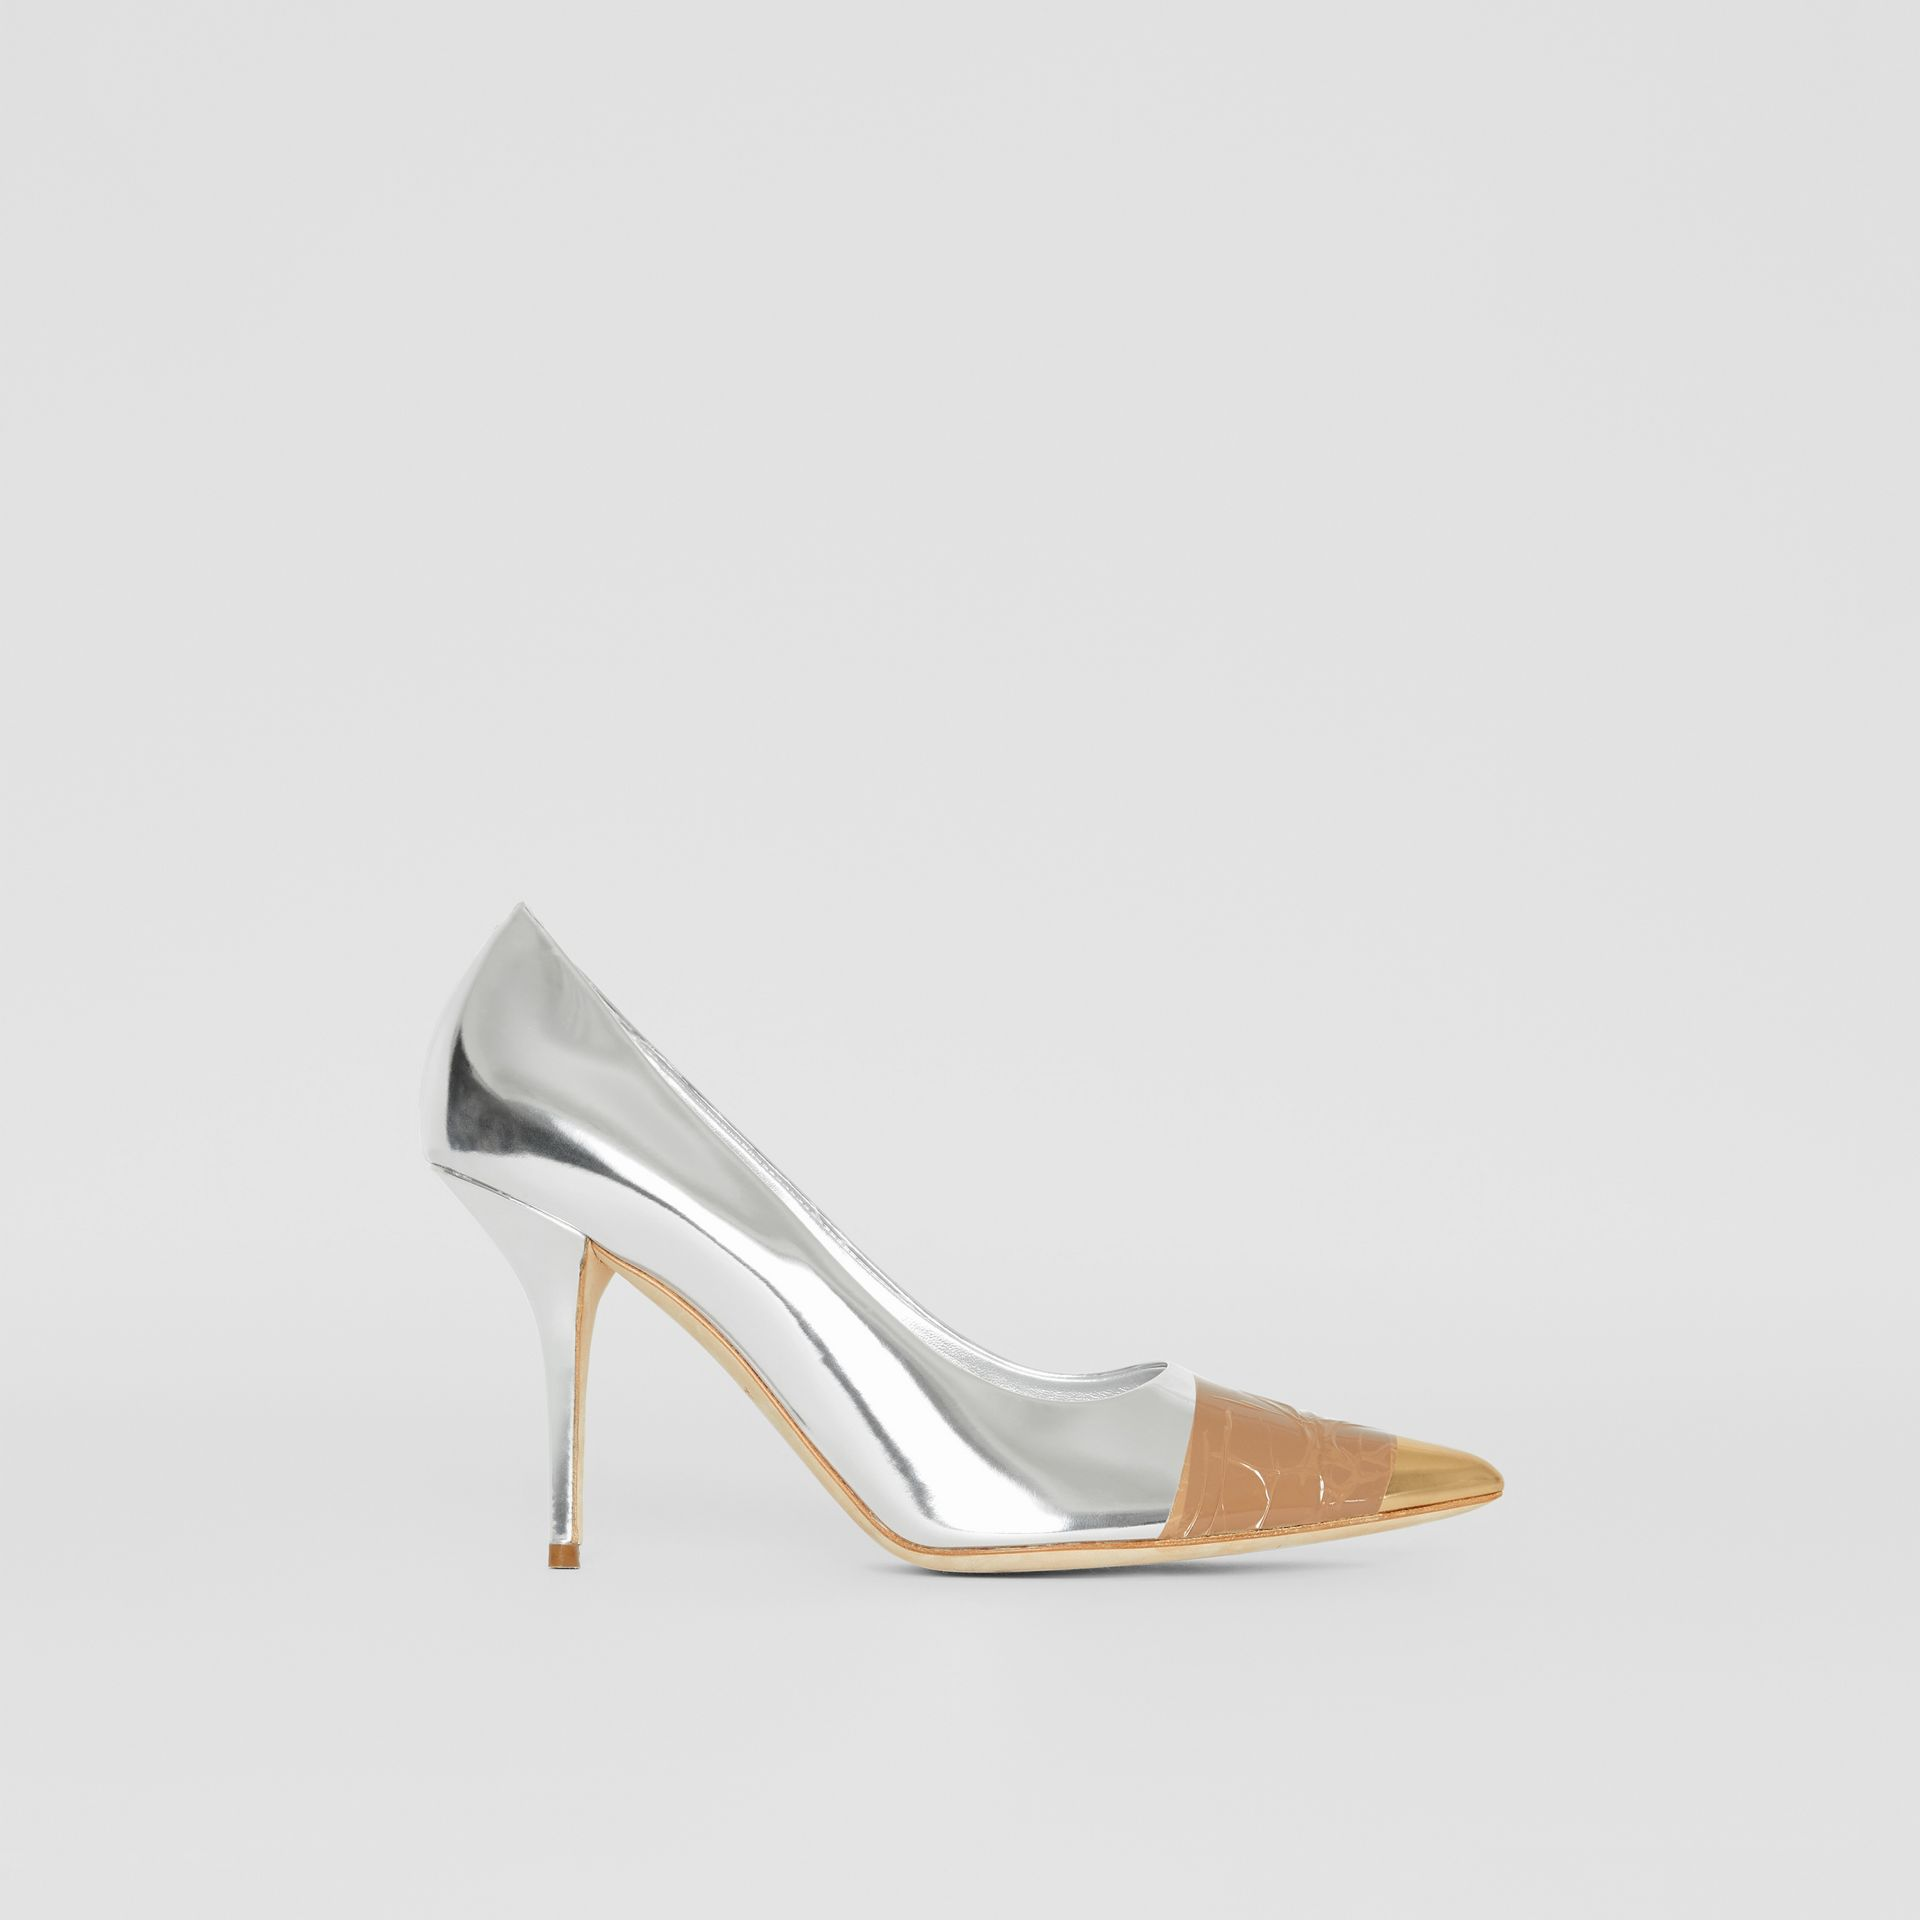 Tape Detail Mirrored Leather Pumps in Silver/gold - Women | Burberry Hong Kong - gallery image 5